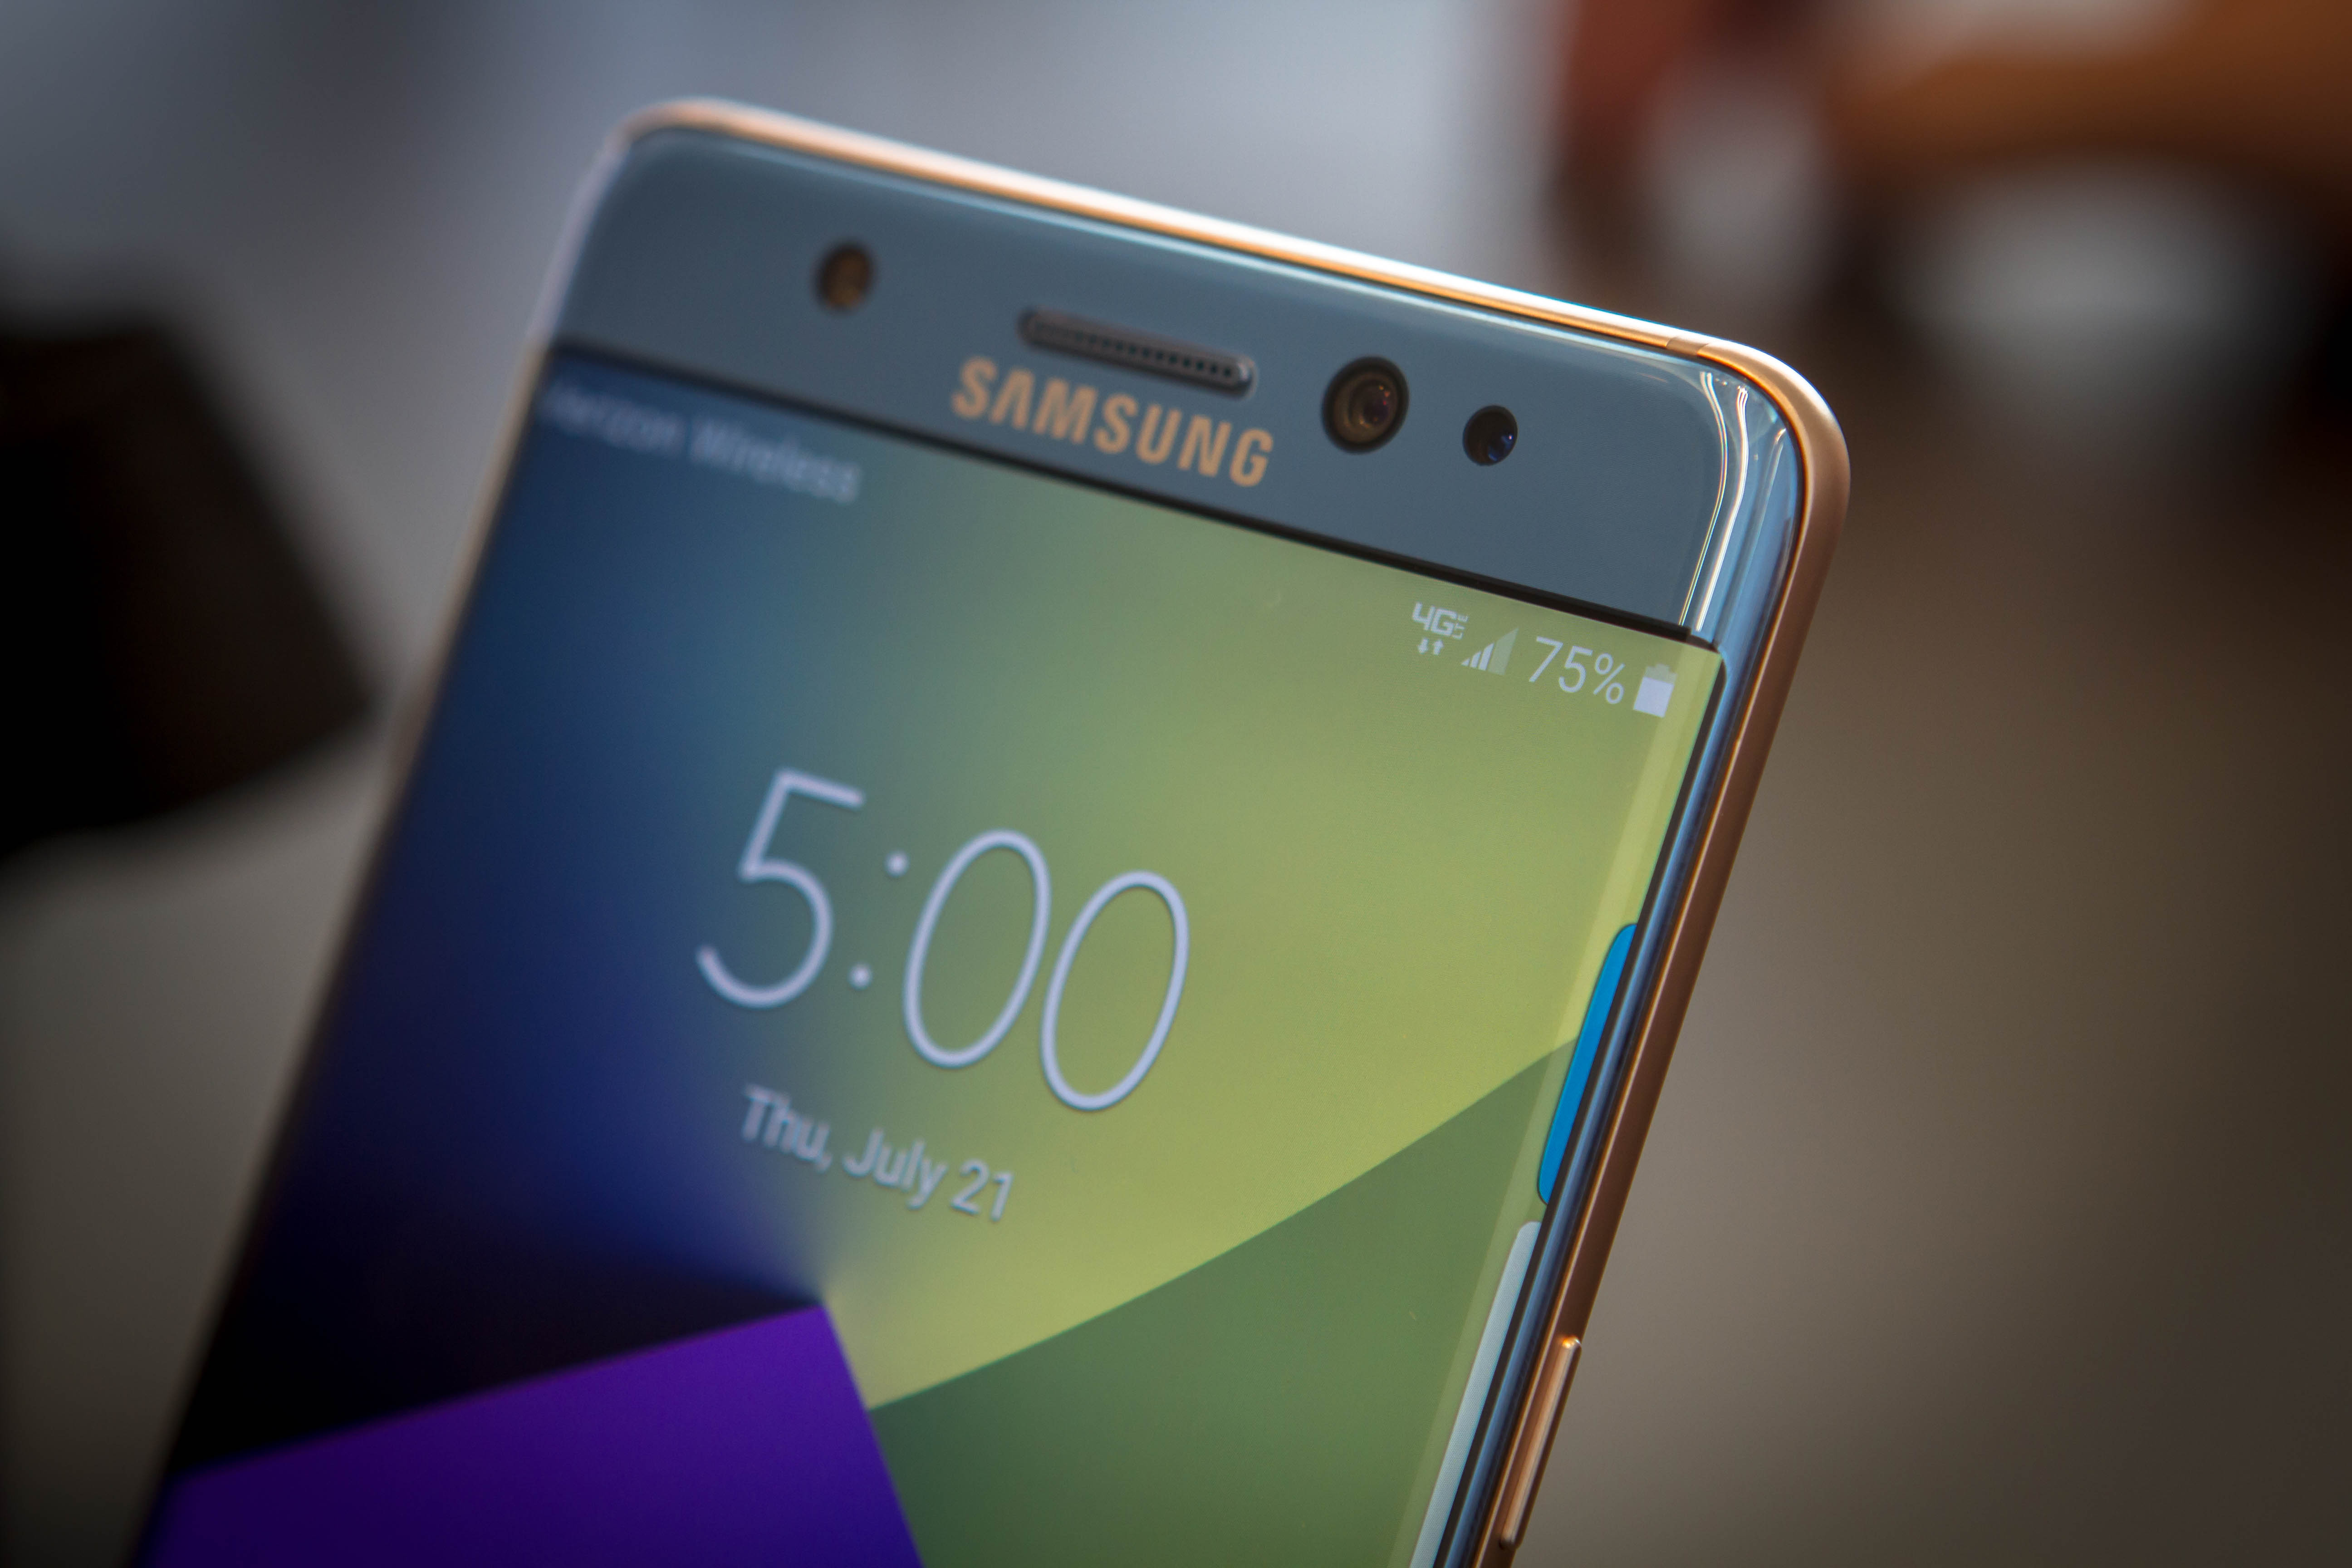 The front of the Samsung Galaxy Note7 smartphone with an extra camera for the iris scanner.